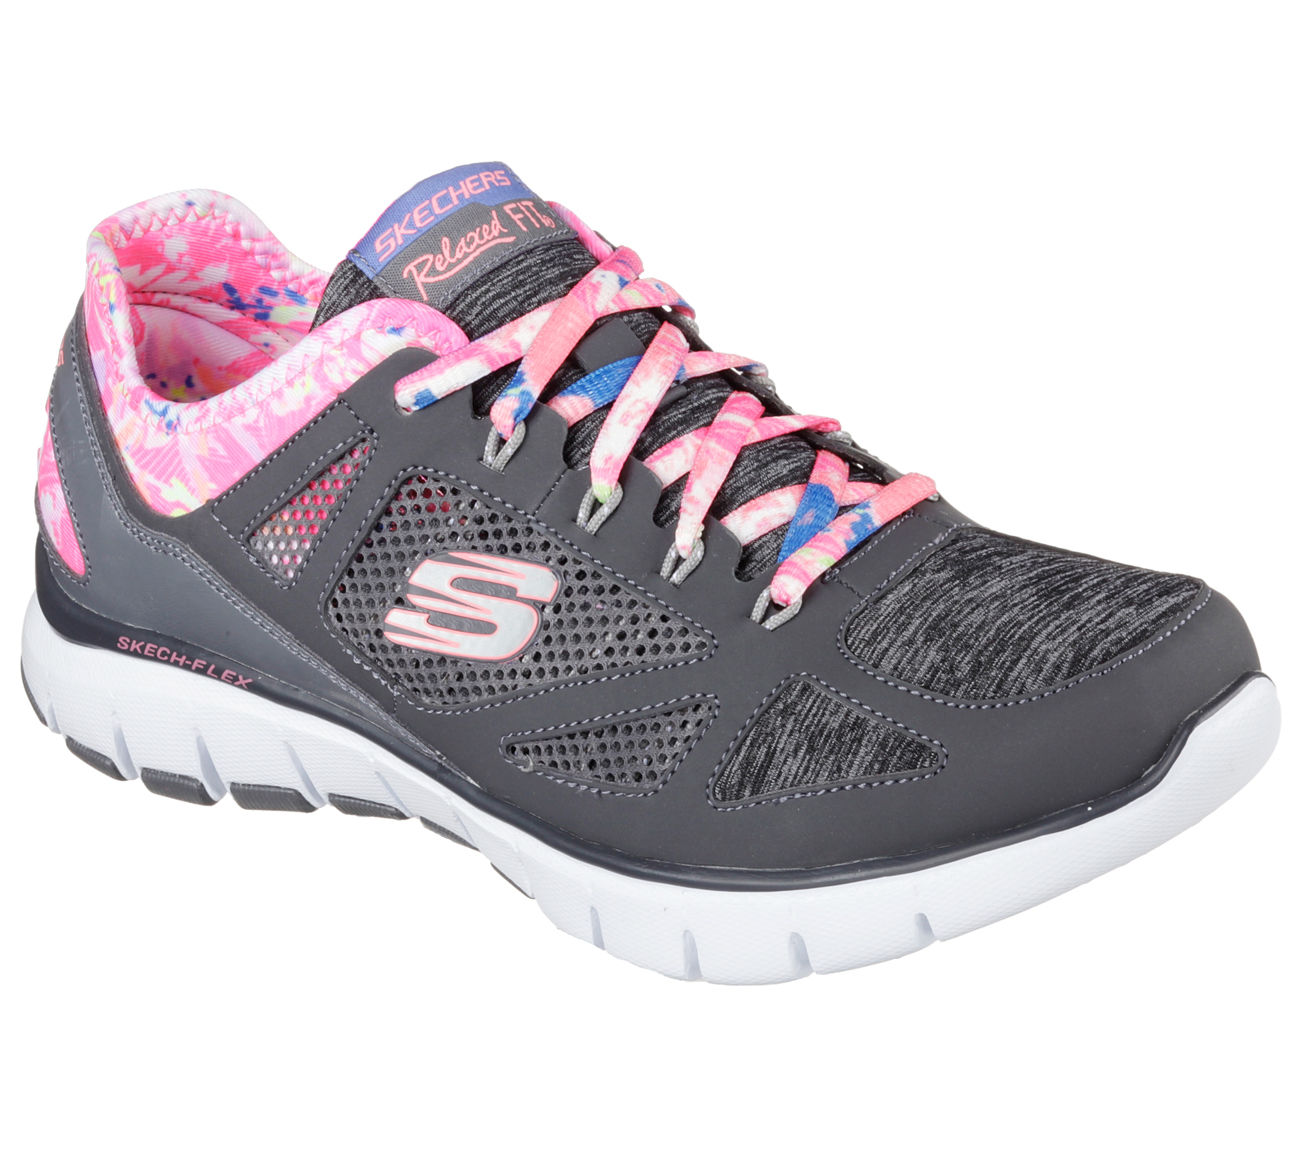 Skechers 12133 CCHP Women's SKECH FLEX-TROPICAL VIBE Training by Skechers